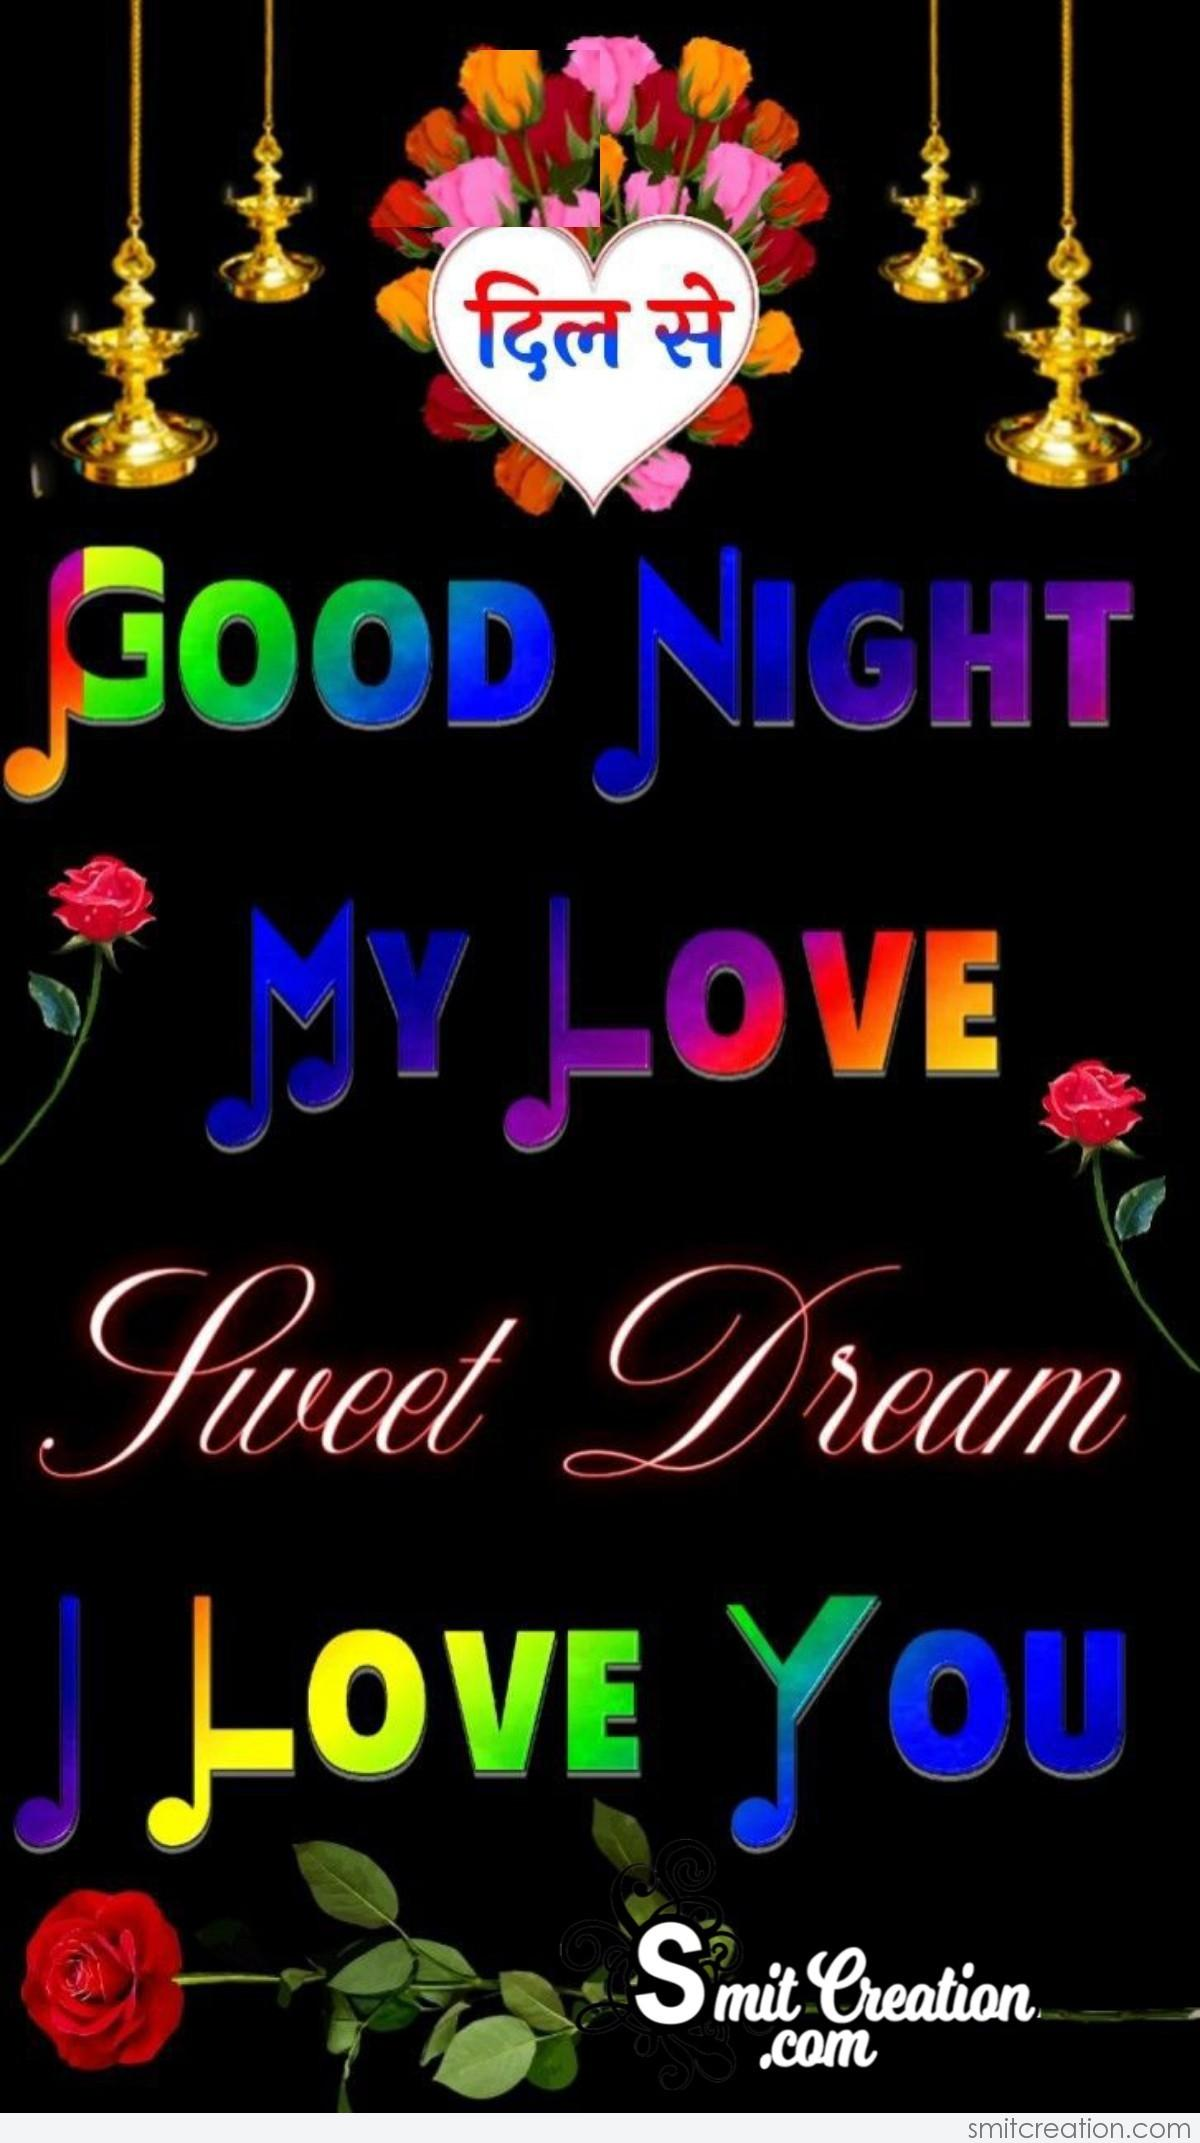 Good Night Love Pictures and Graphics - SmitCreation com